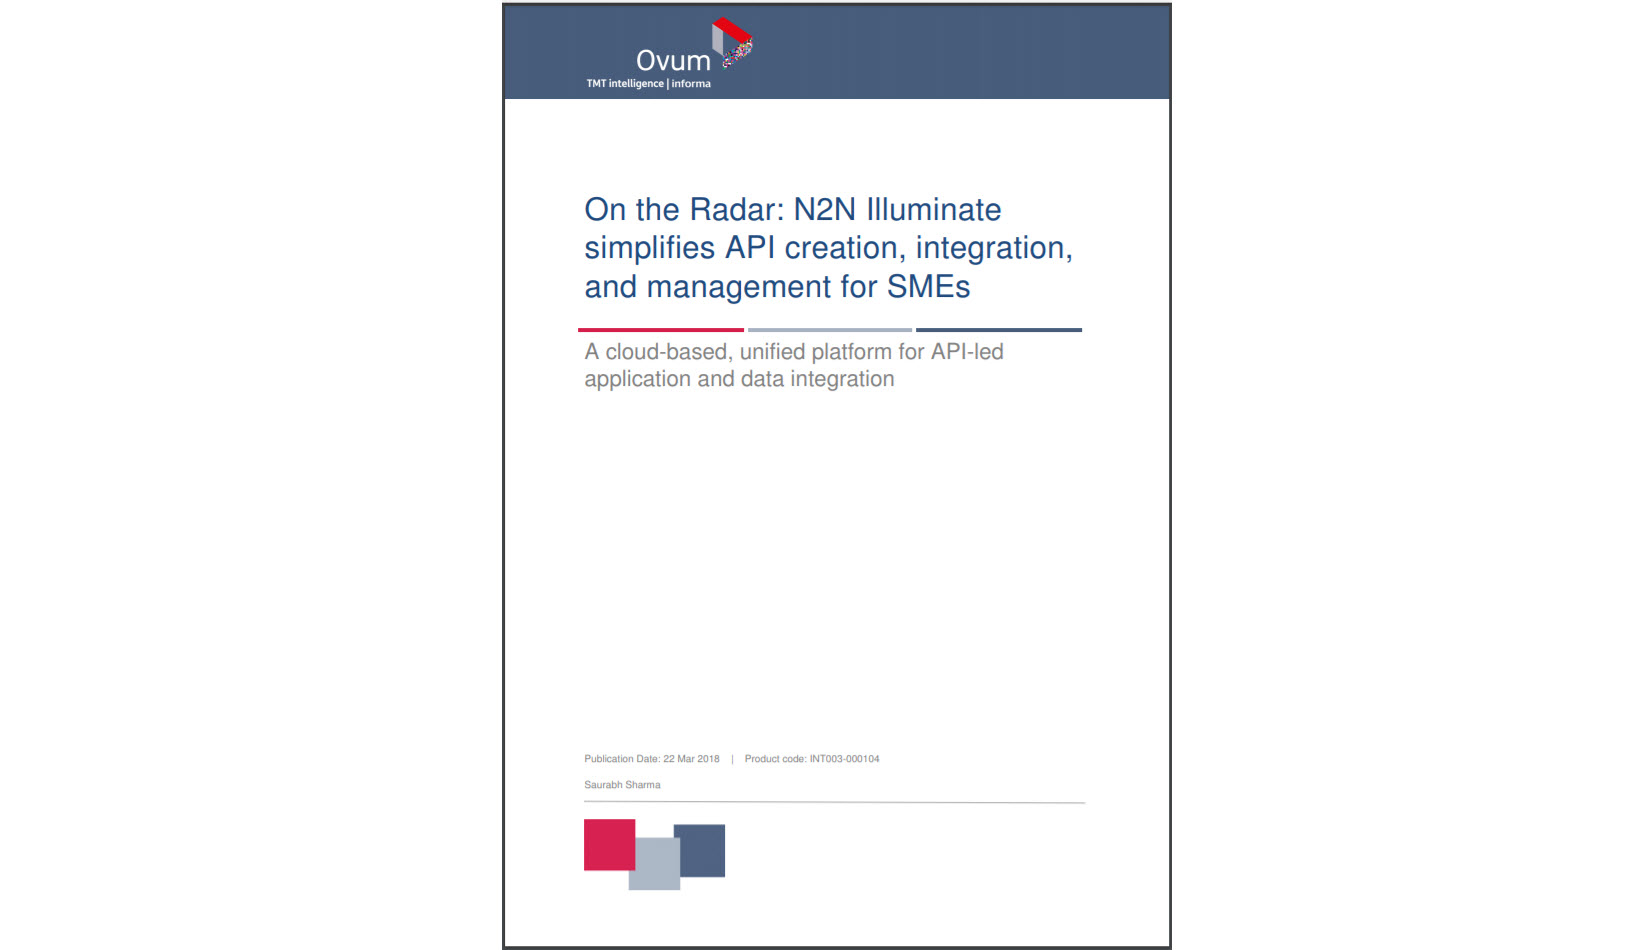 Leading Analyst Firm Recognizes N2N's Illuminate Platform for rapid API creation and API management capabilities.